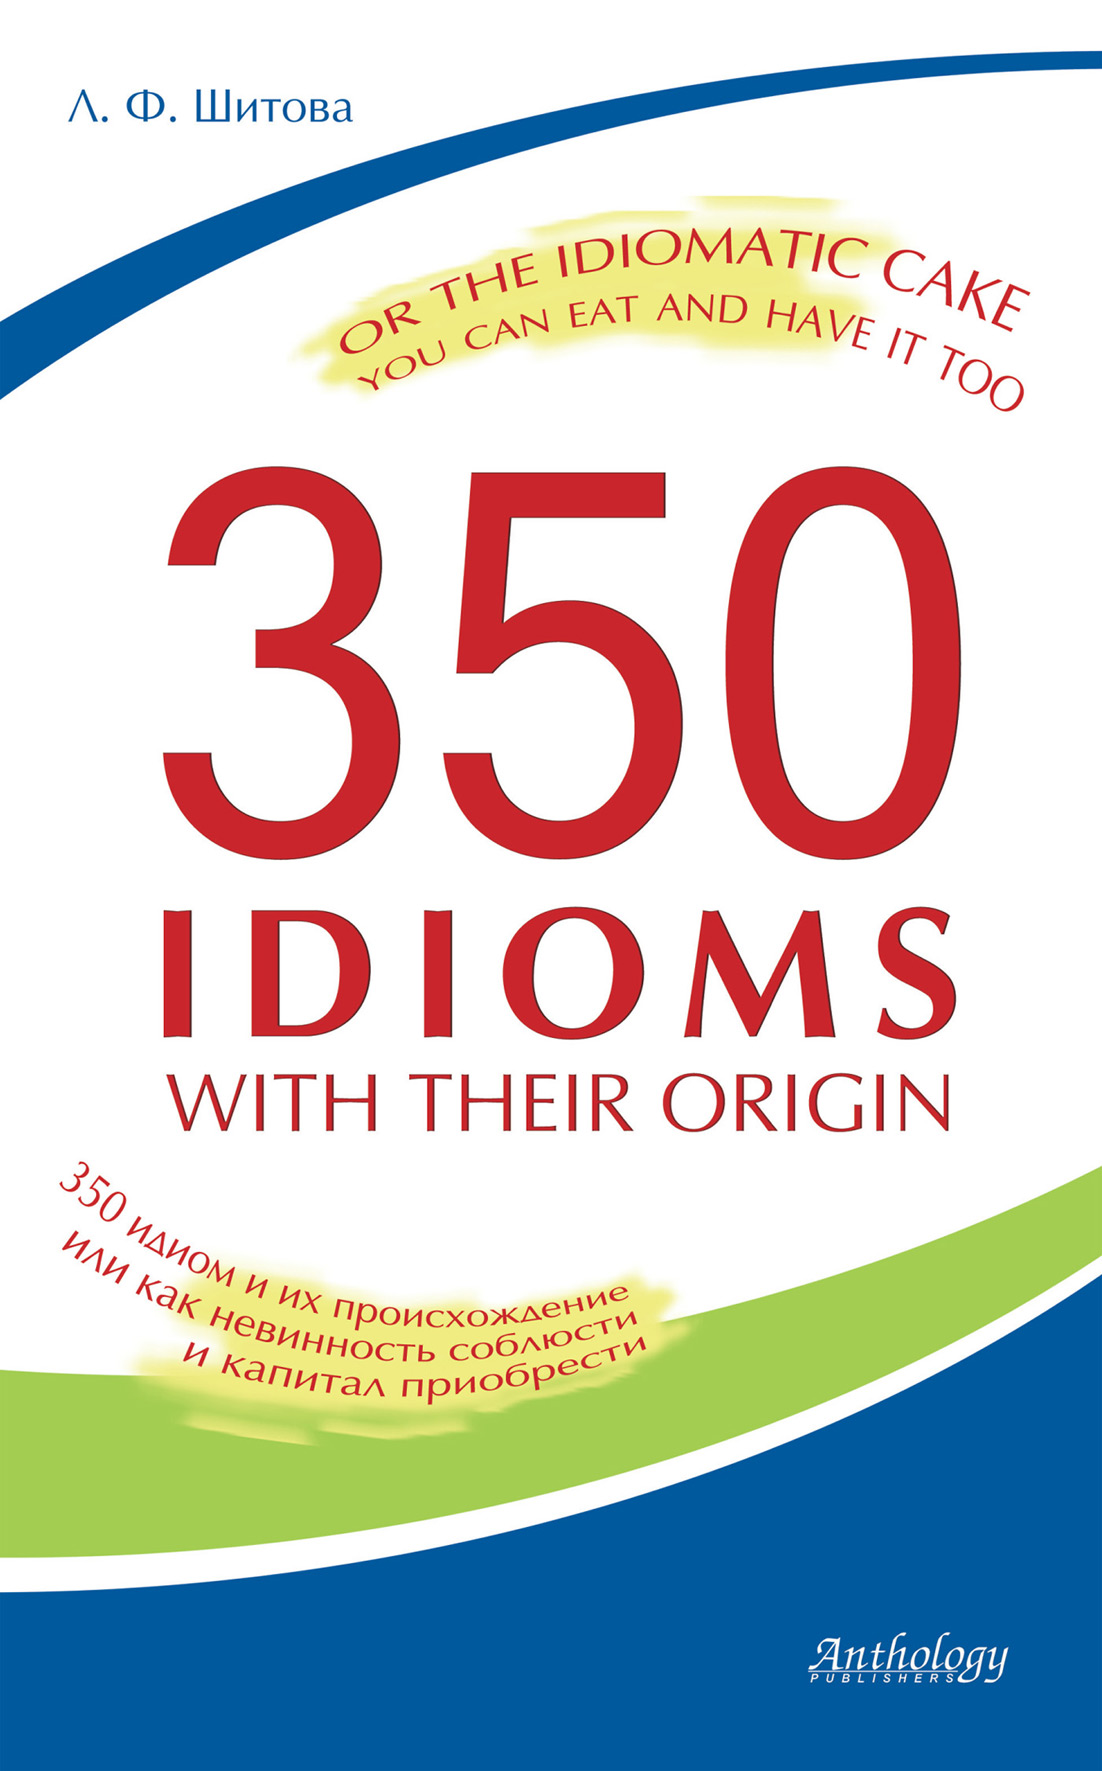 Л. Ф. Шитова 350 Idioms with Their Origin, or The Idiomatic Cake You Can Eat and Have It Too. 350 идиом и их происхождение, или как невинность соблюсти и капитал приобрести л ф шитова proper name idioms and their origins словарь именных идиом